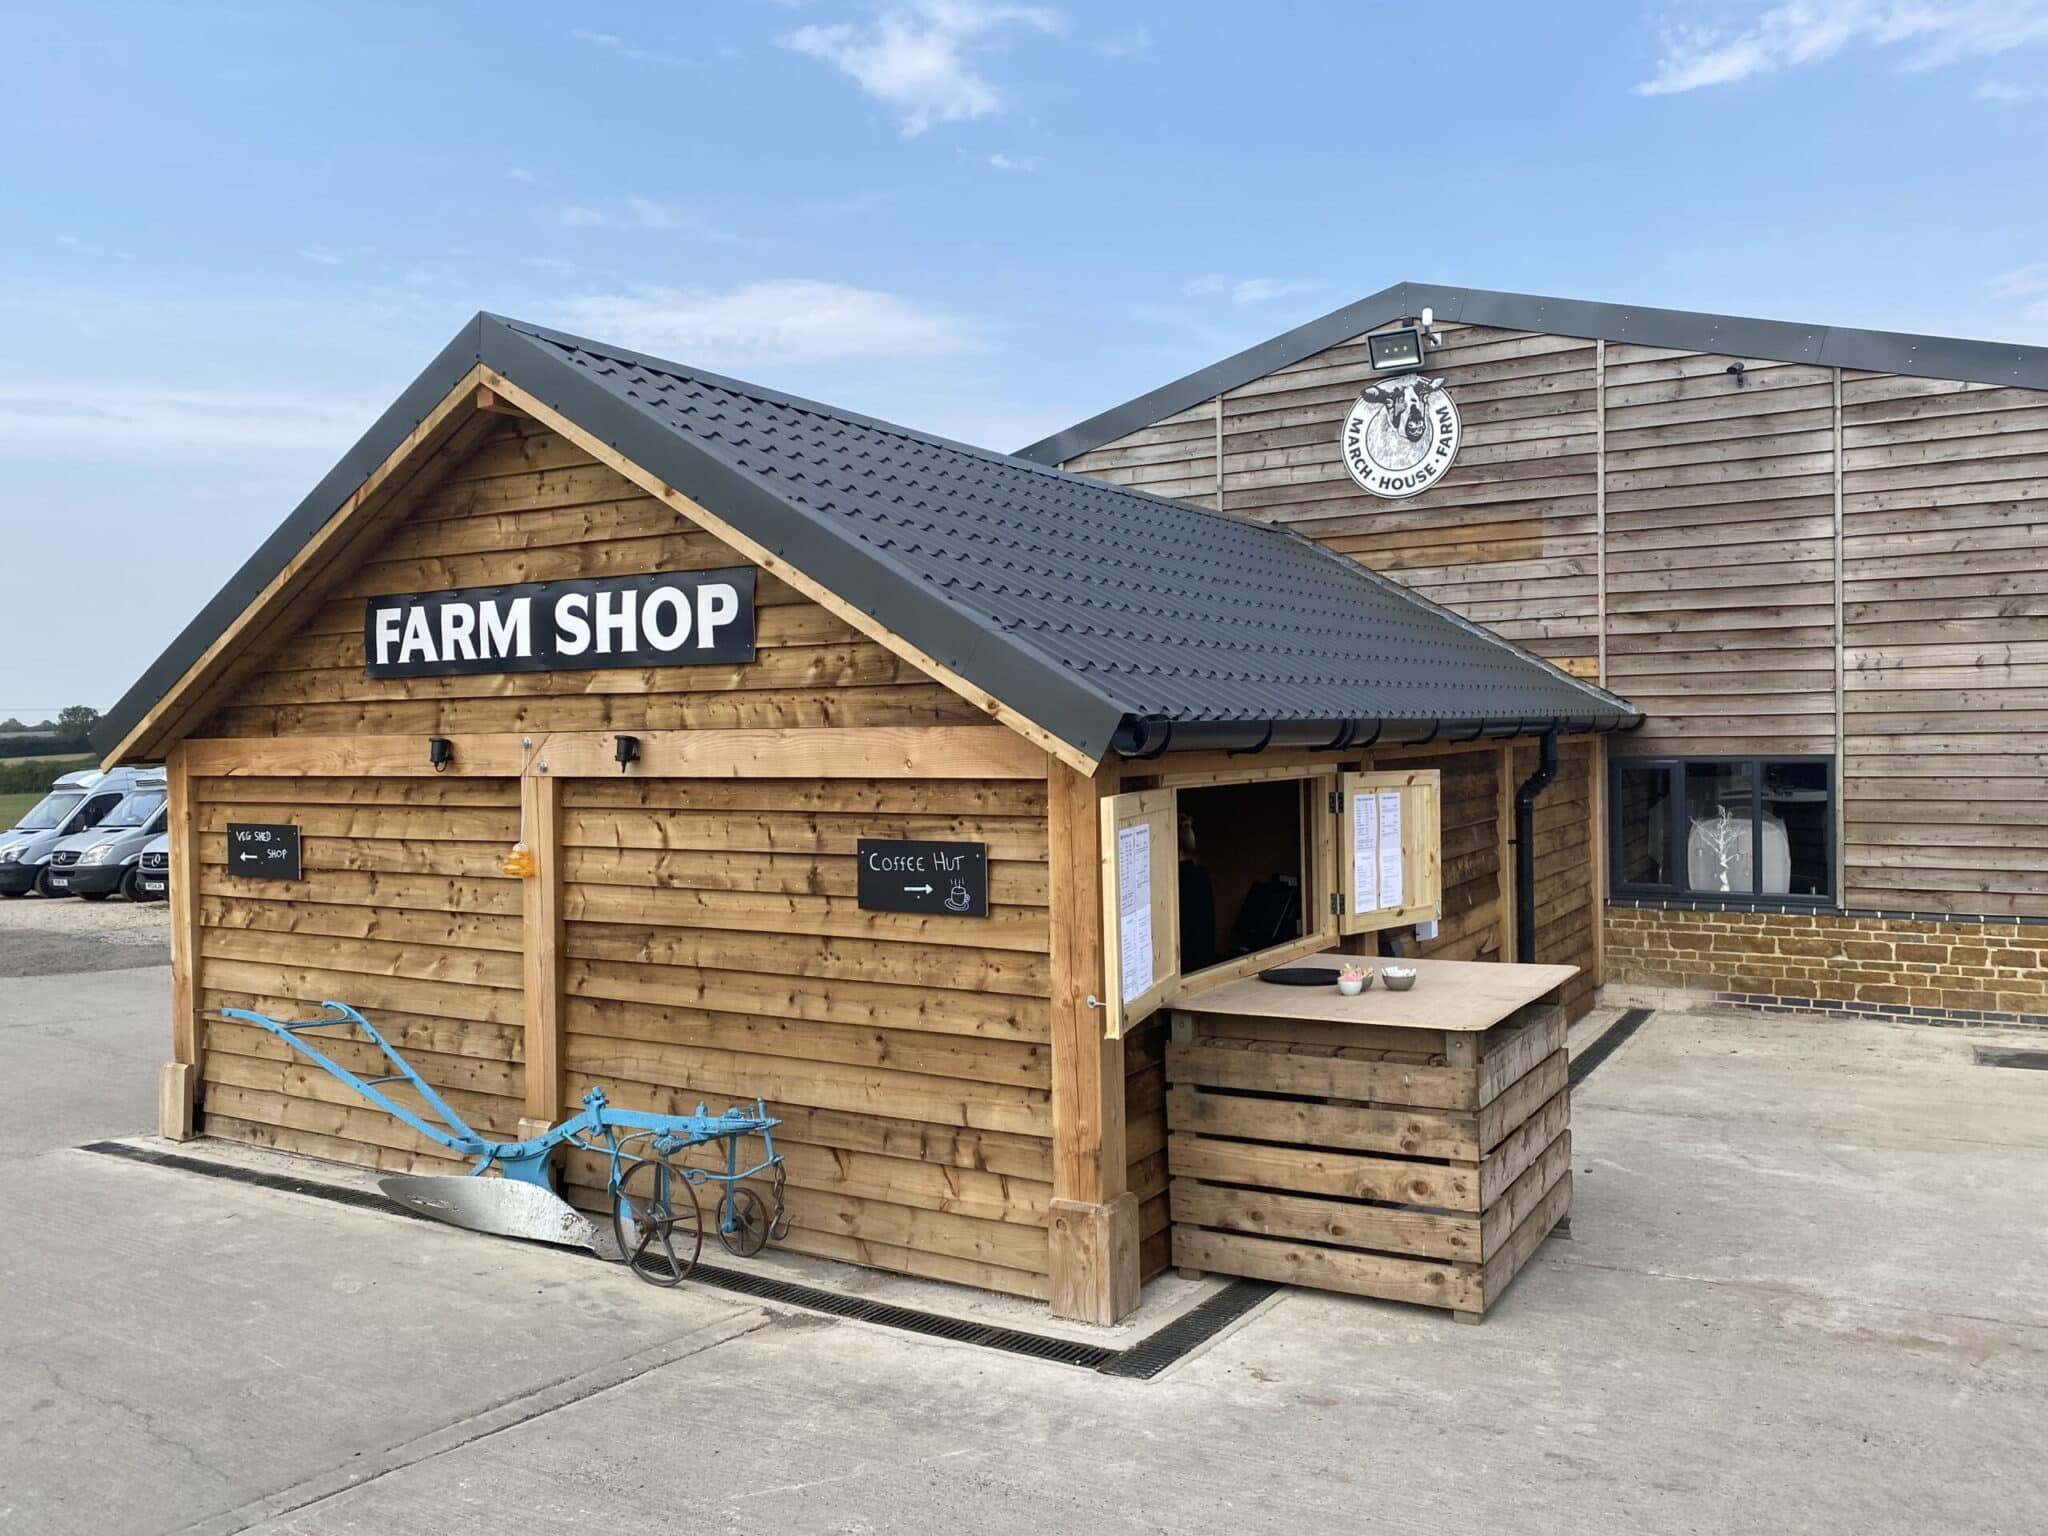 The new March House Farm Shop is now open